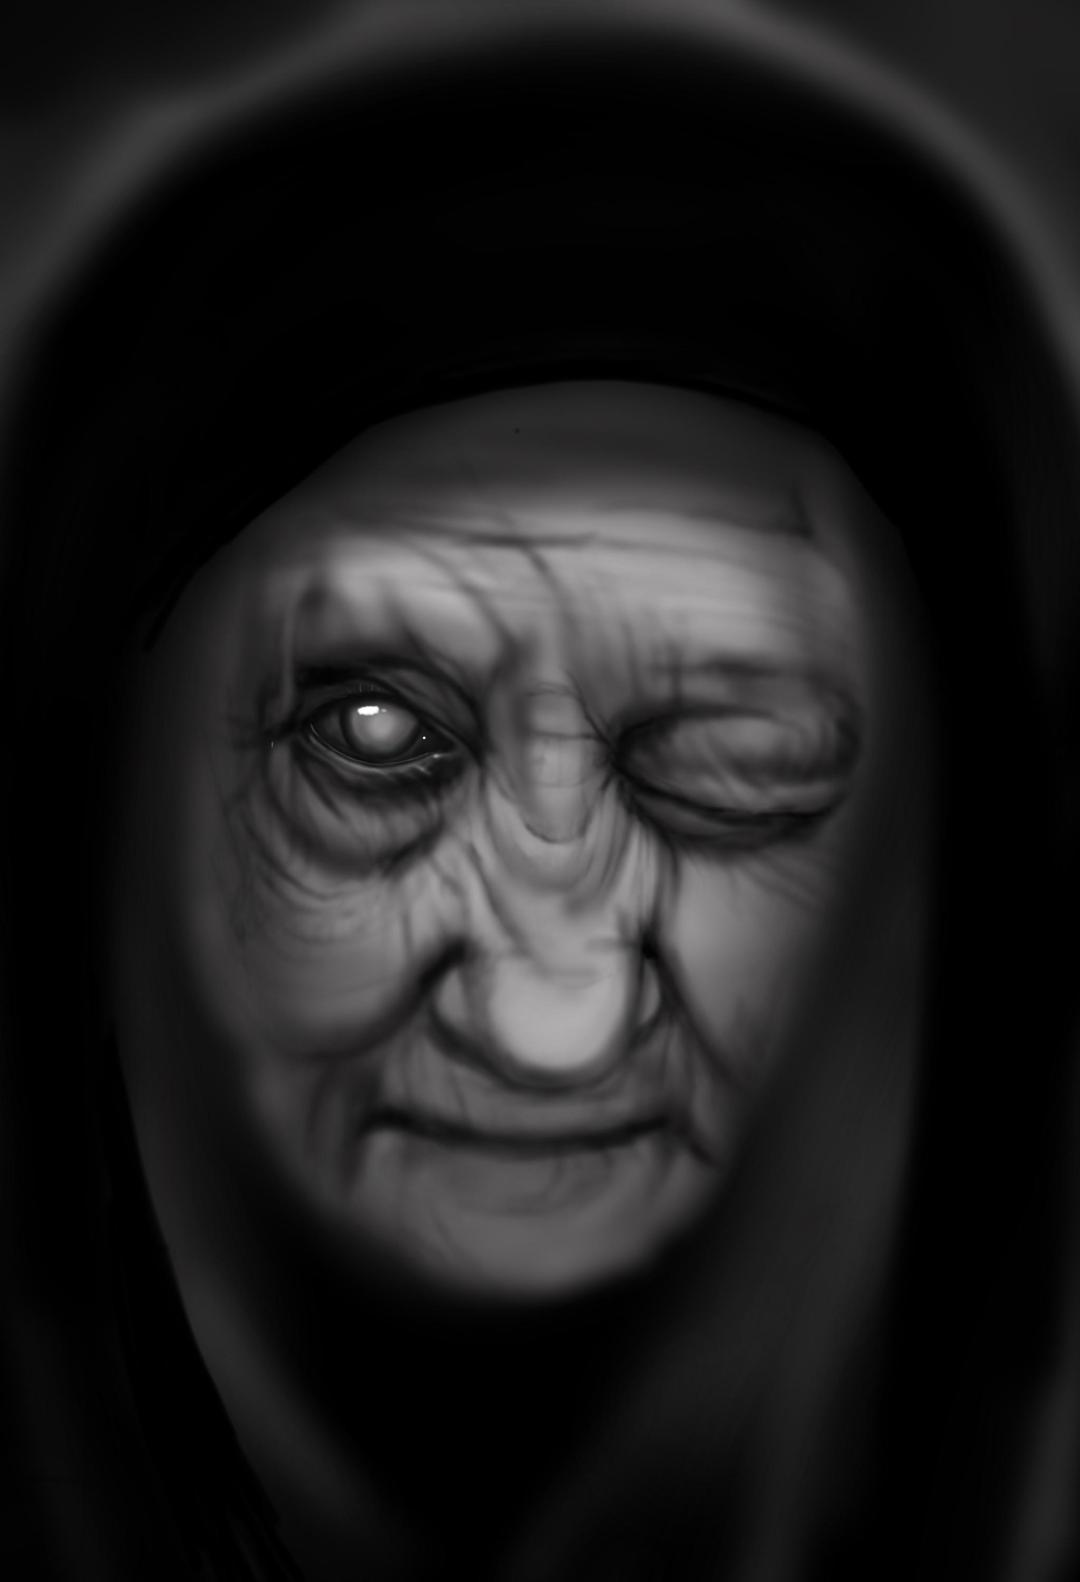 My Interpretation Of Pesta The Ashen Faced Woman From Norwegian Folklore That Was The Personification Of The Black Plague In The 14th Century Specart